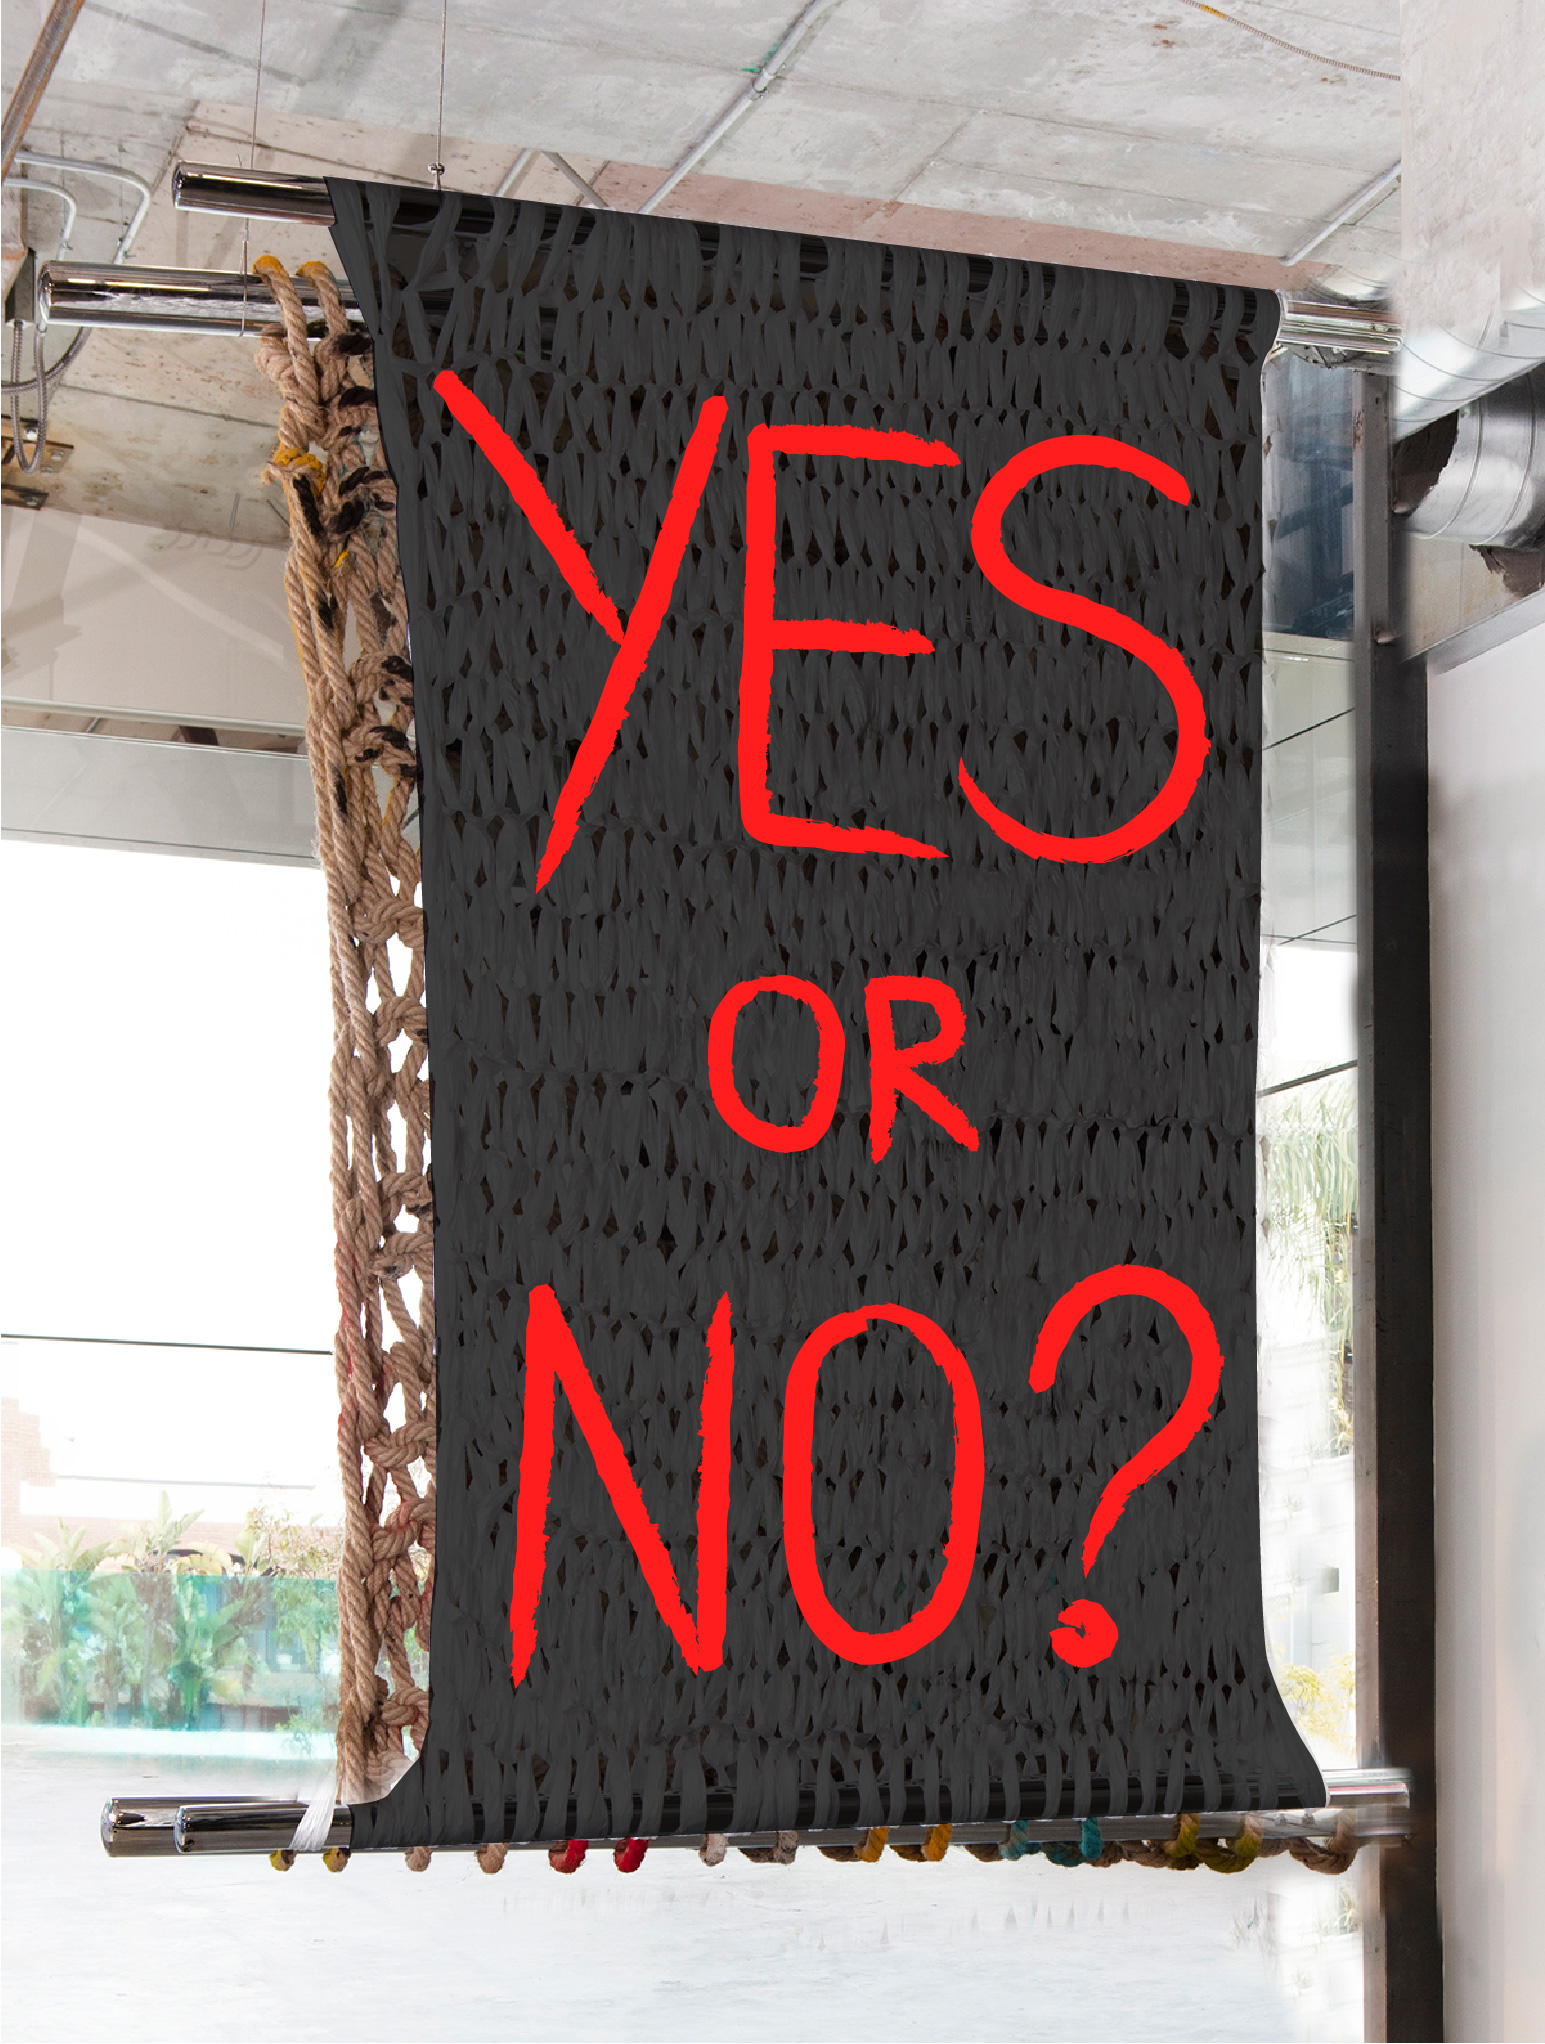 YES OR NO? | 5 X 4' | PAINT ON PLASTIC